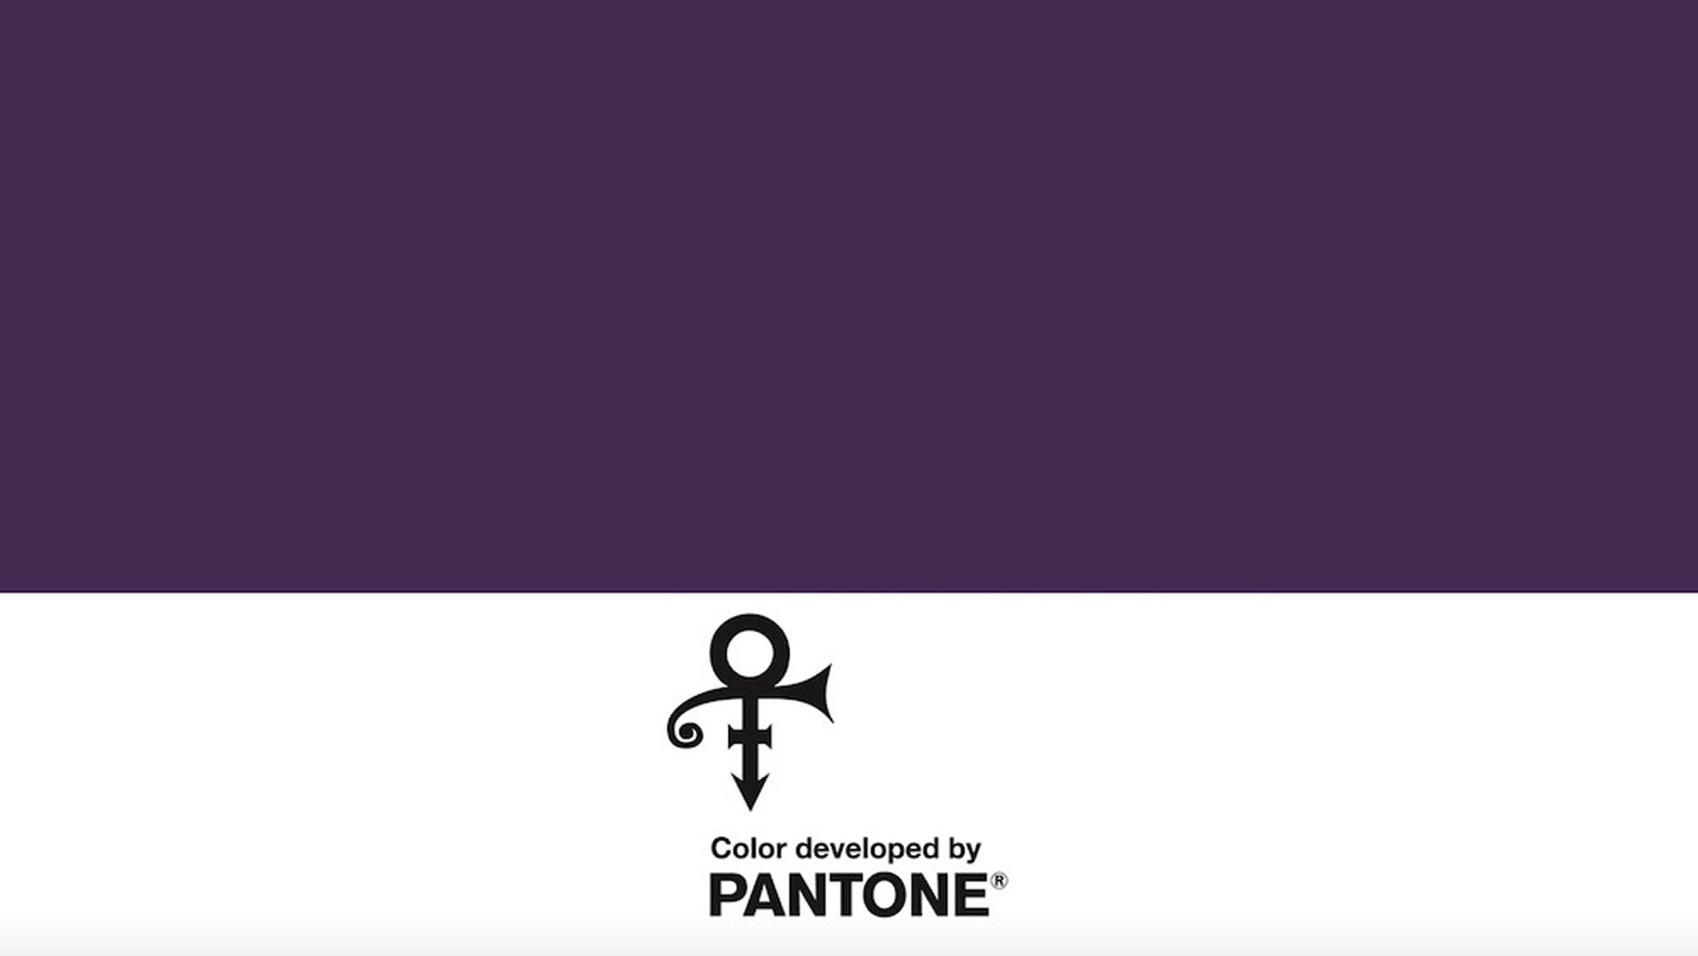 Prince announces pantone custom color purple dezeen hero2